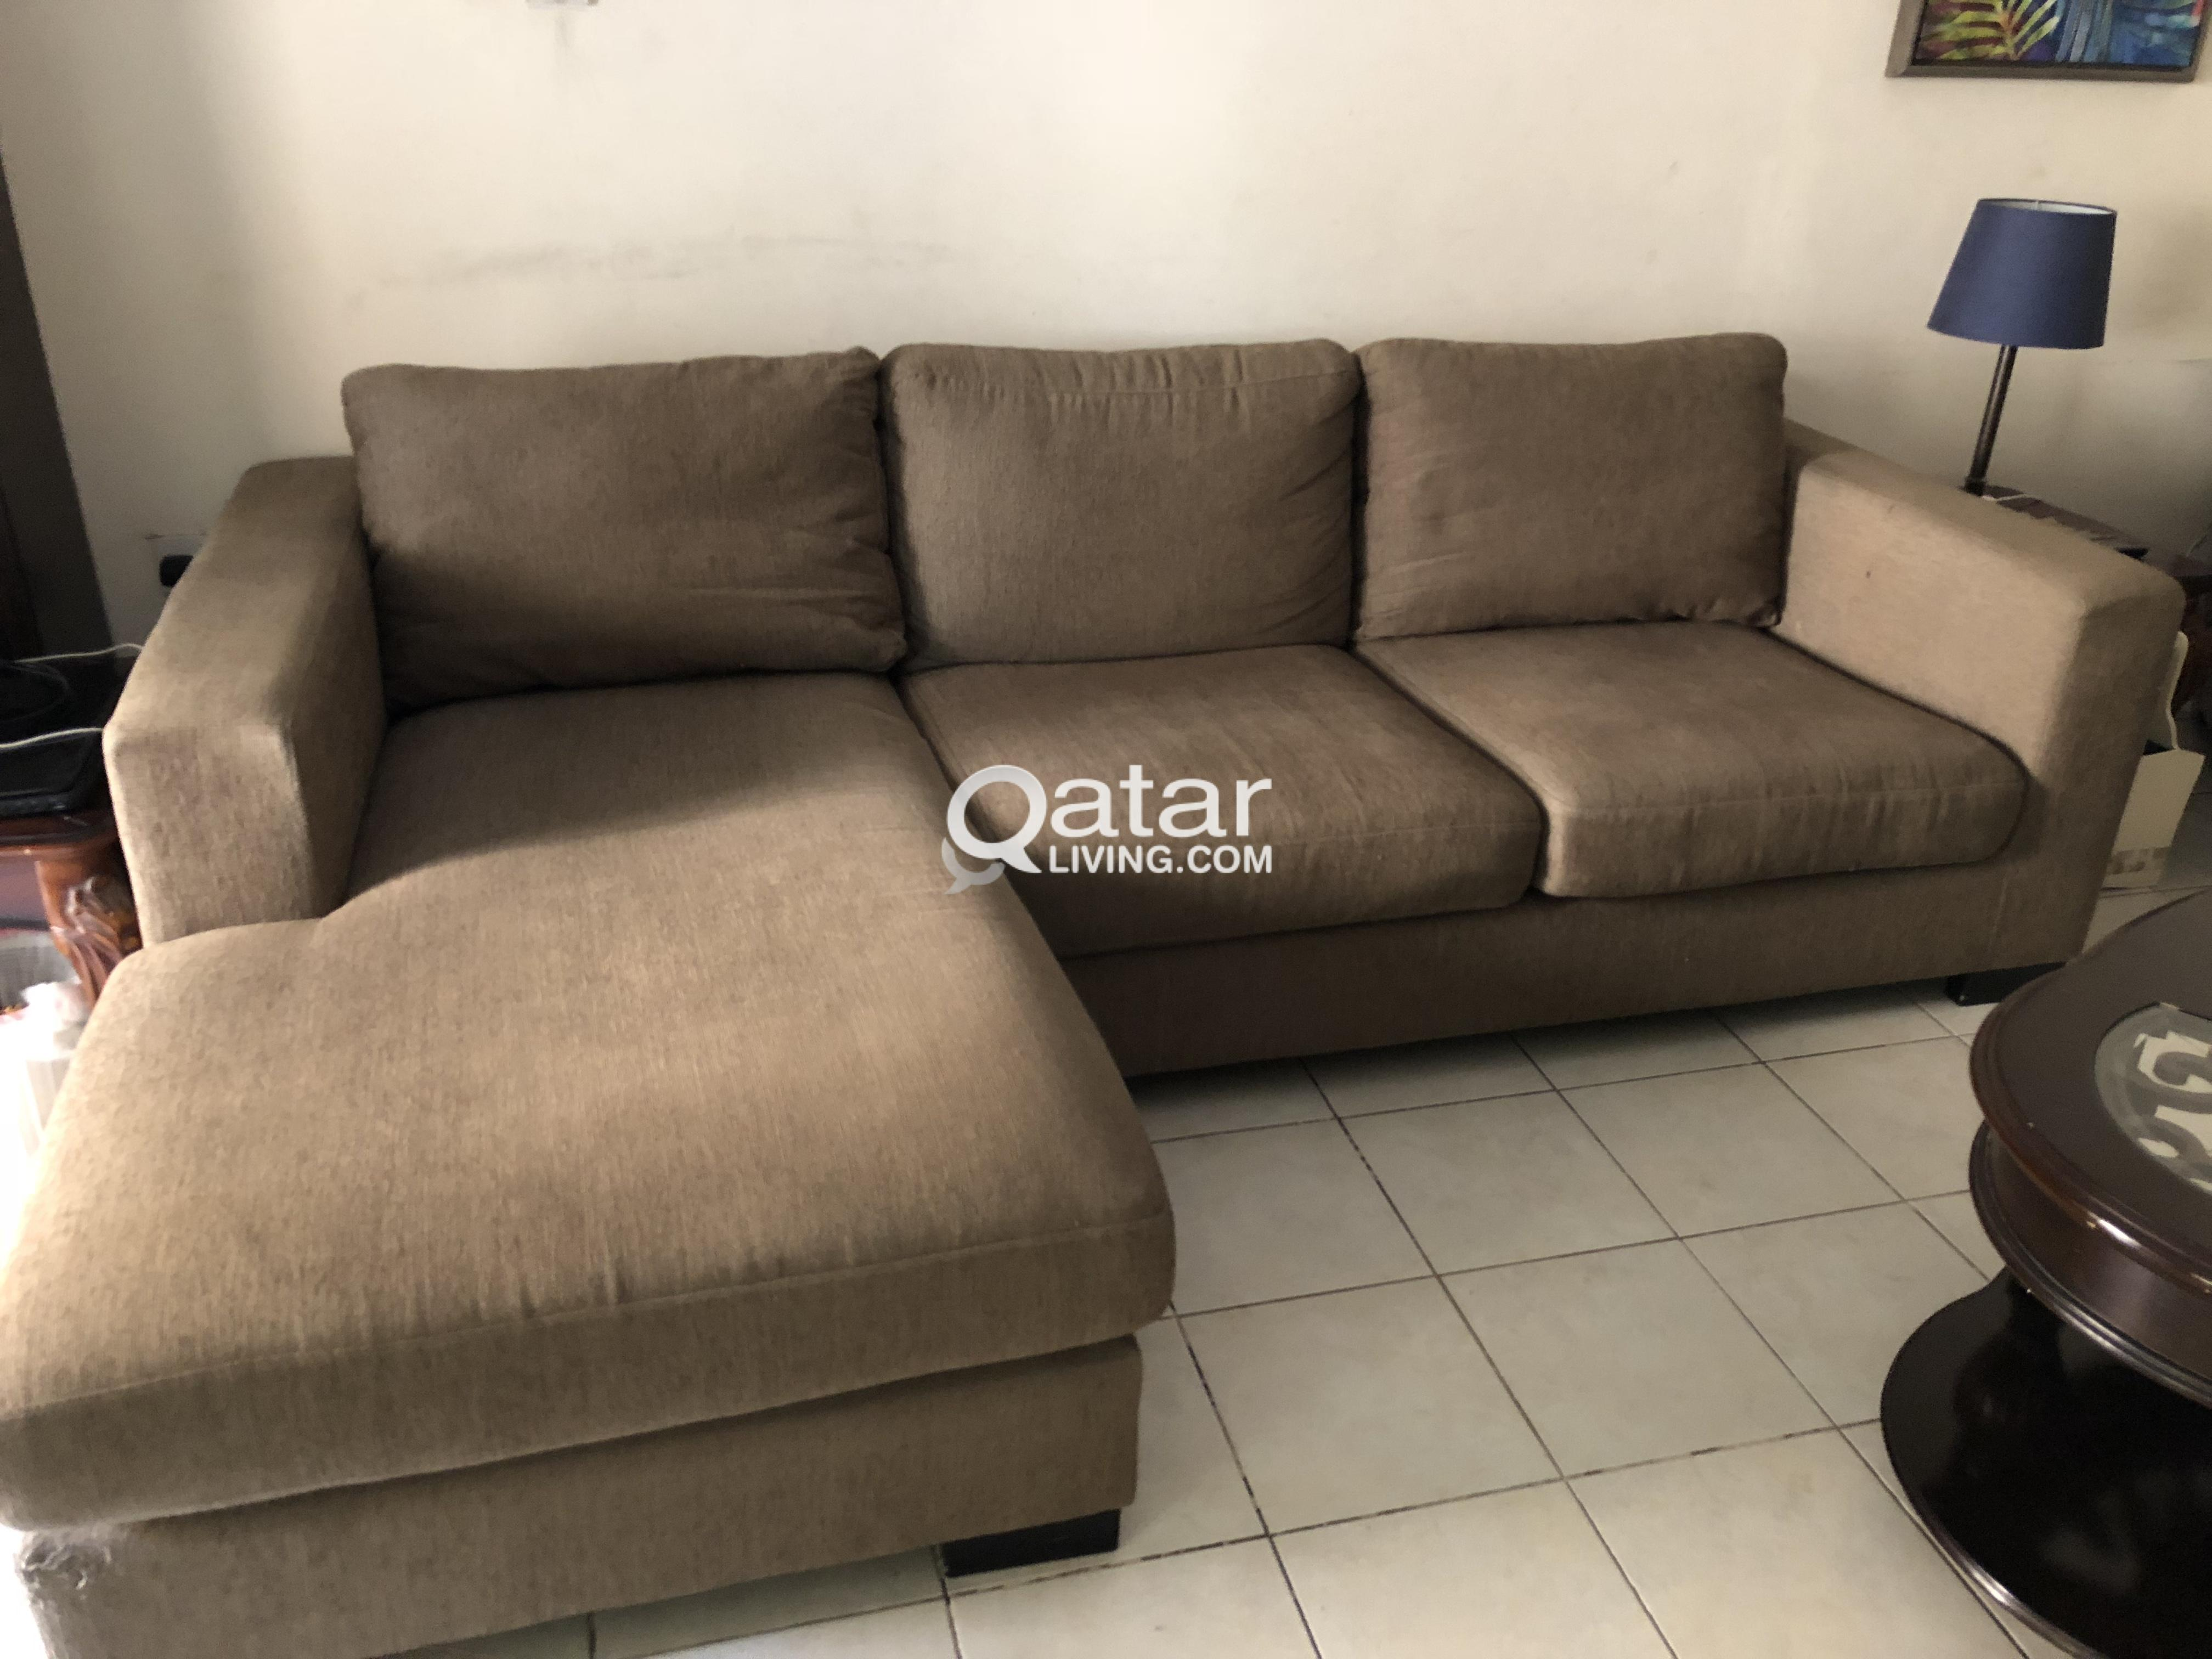 L Shape Sofa From Home Center In Very Good Condition For Immediate